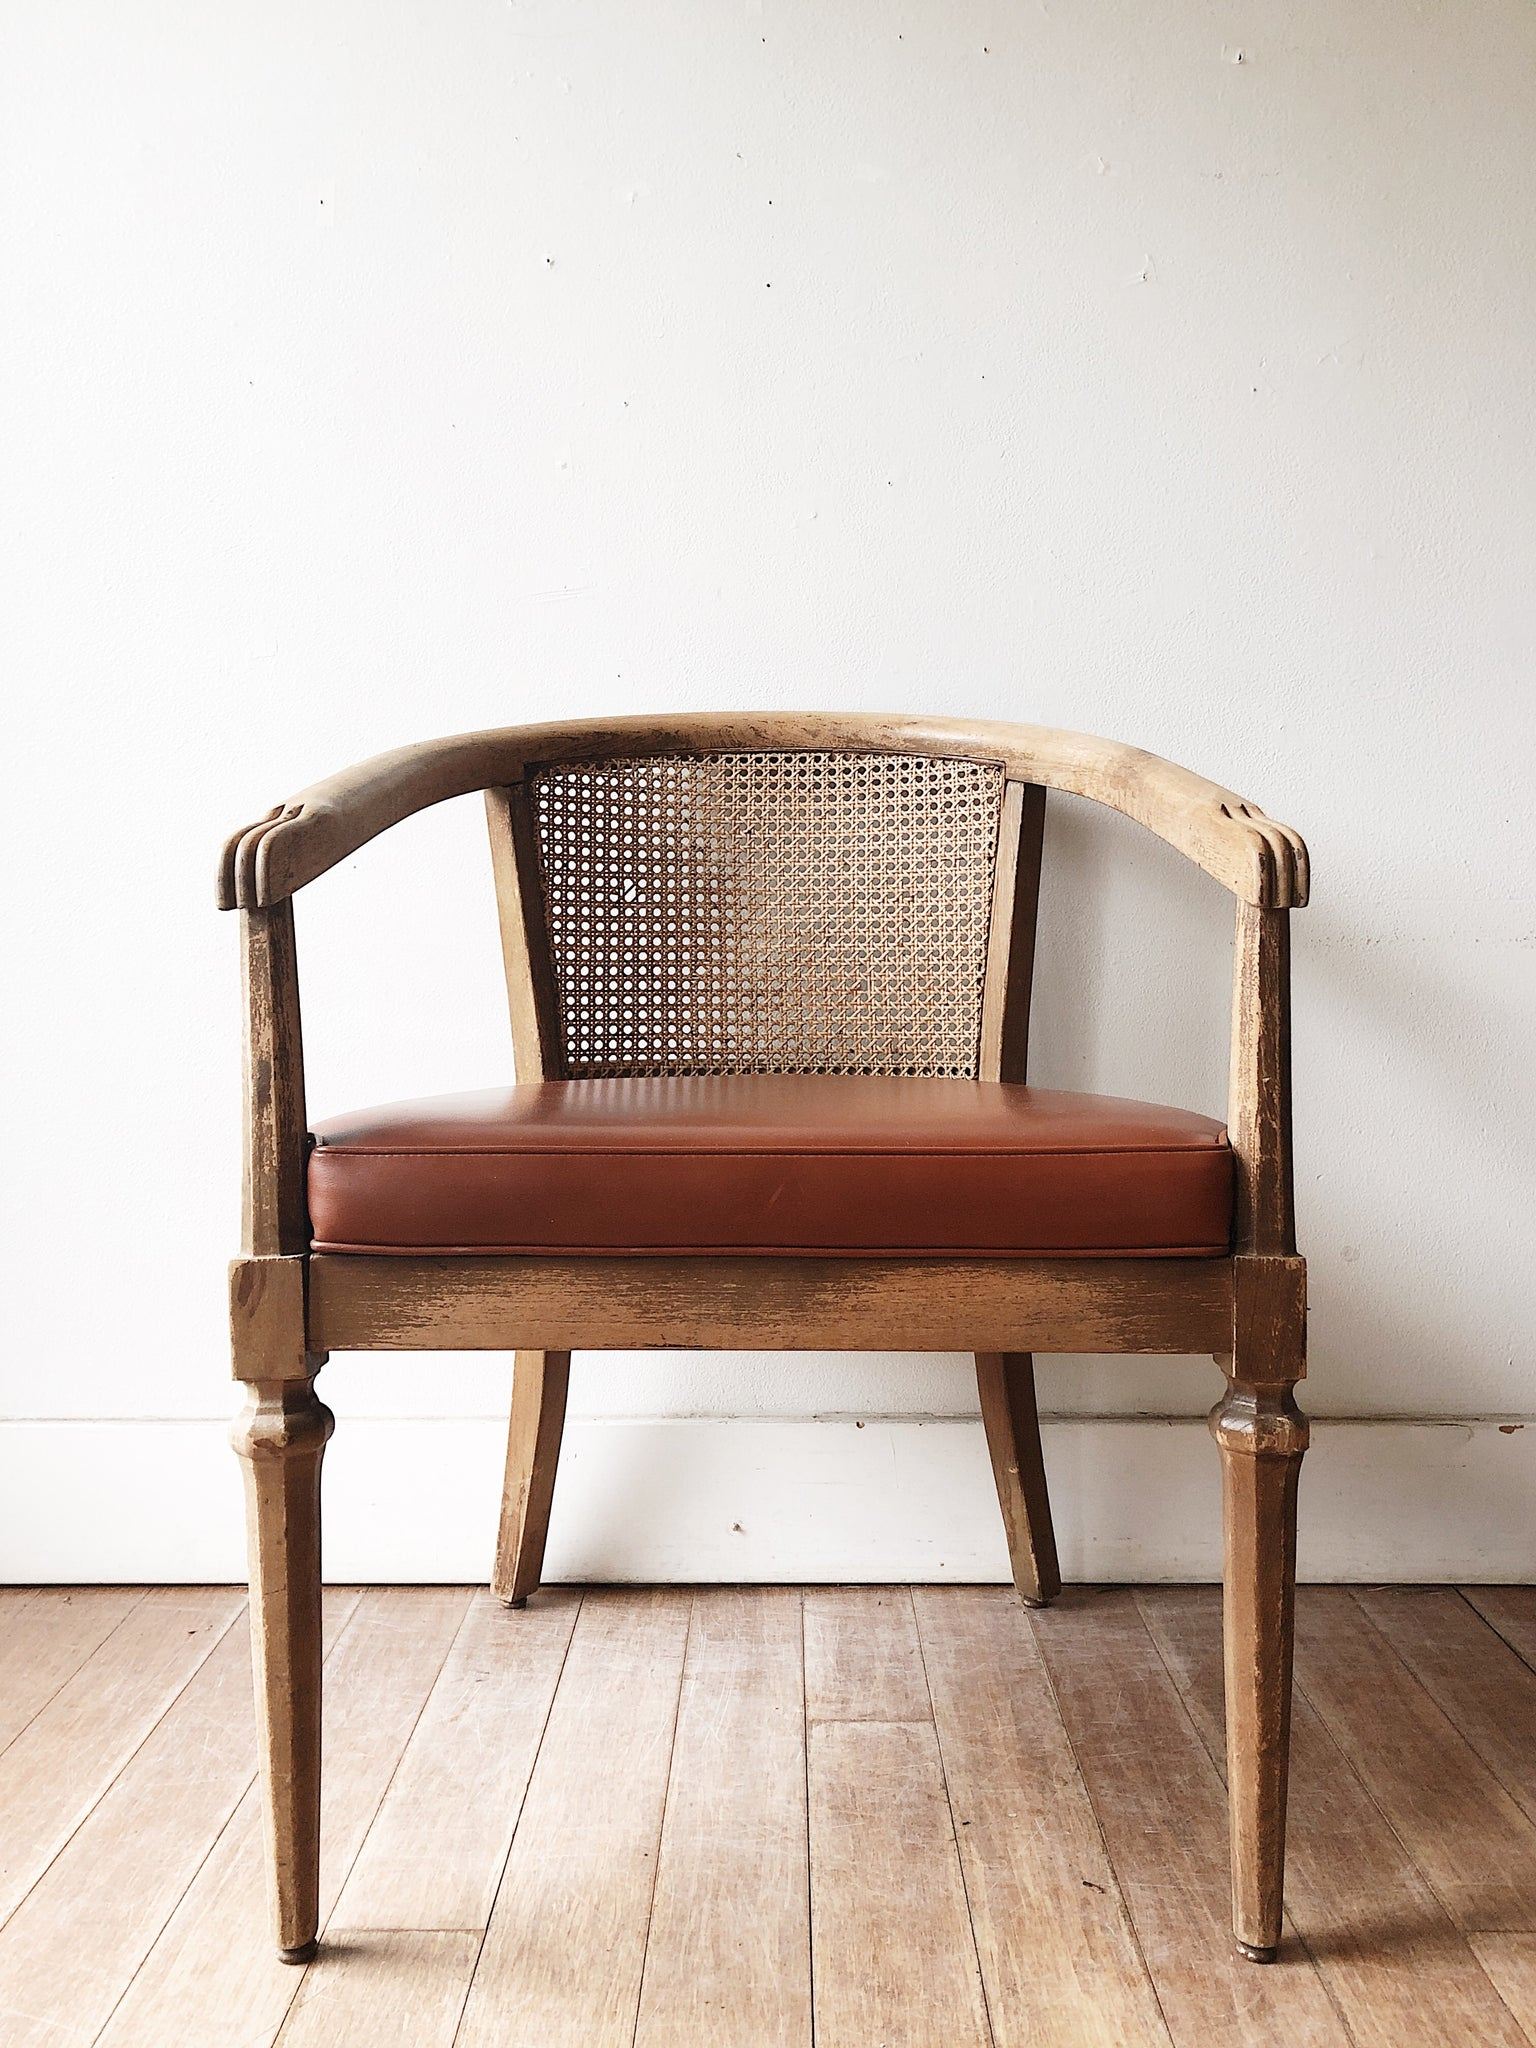 Vintage Cane Barrel Back Chair